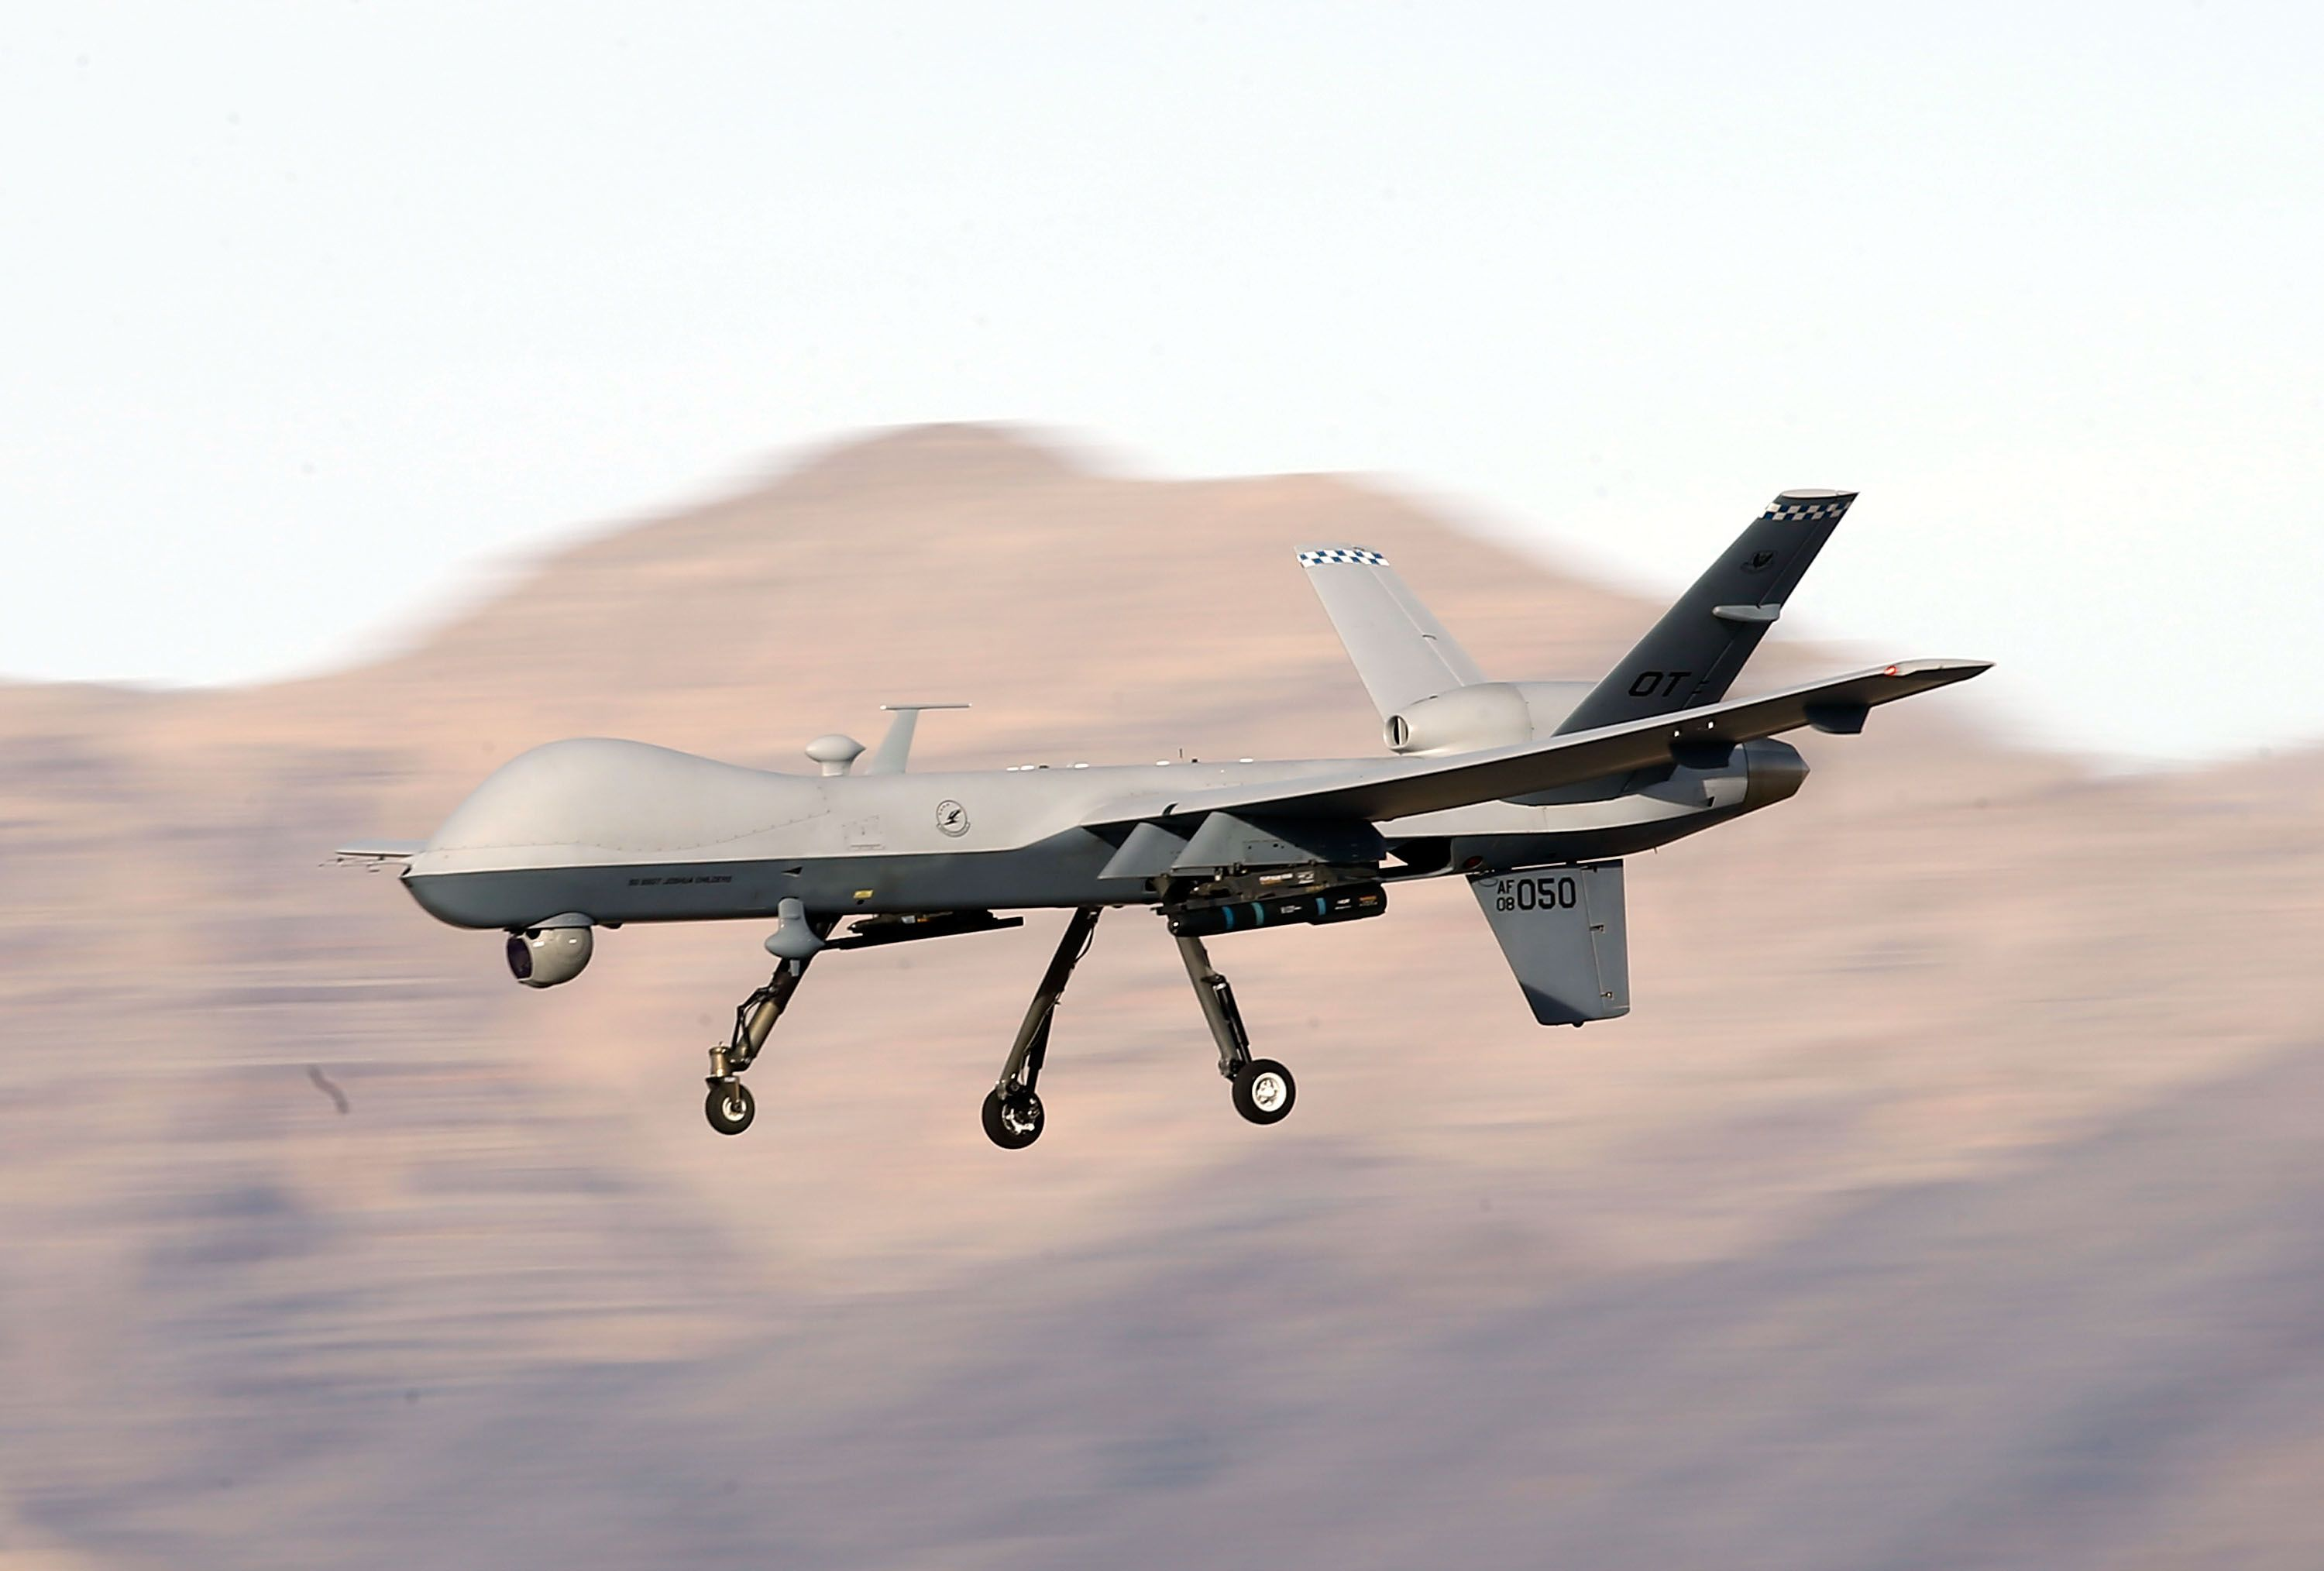 U.S Air Force • MQ 9 Reaper • Remotely Piloted Aircraft